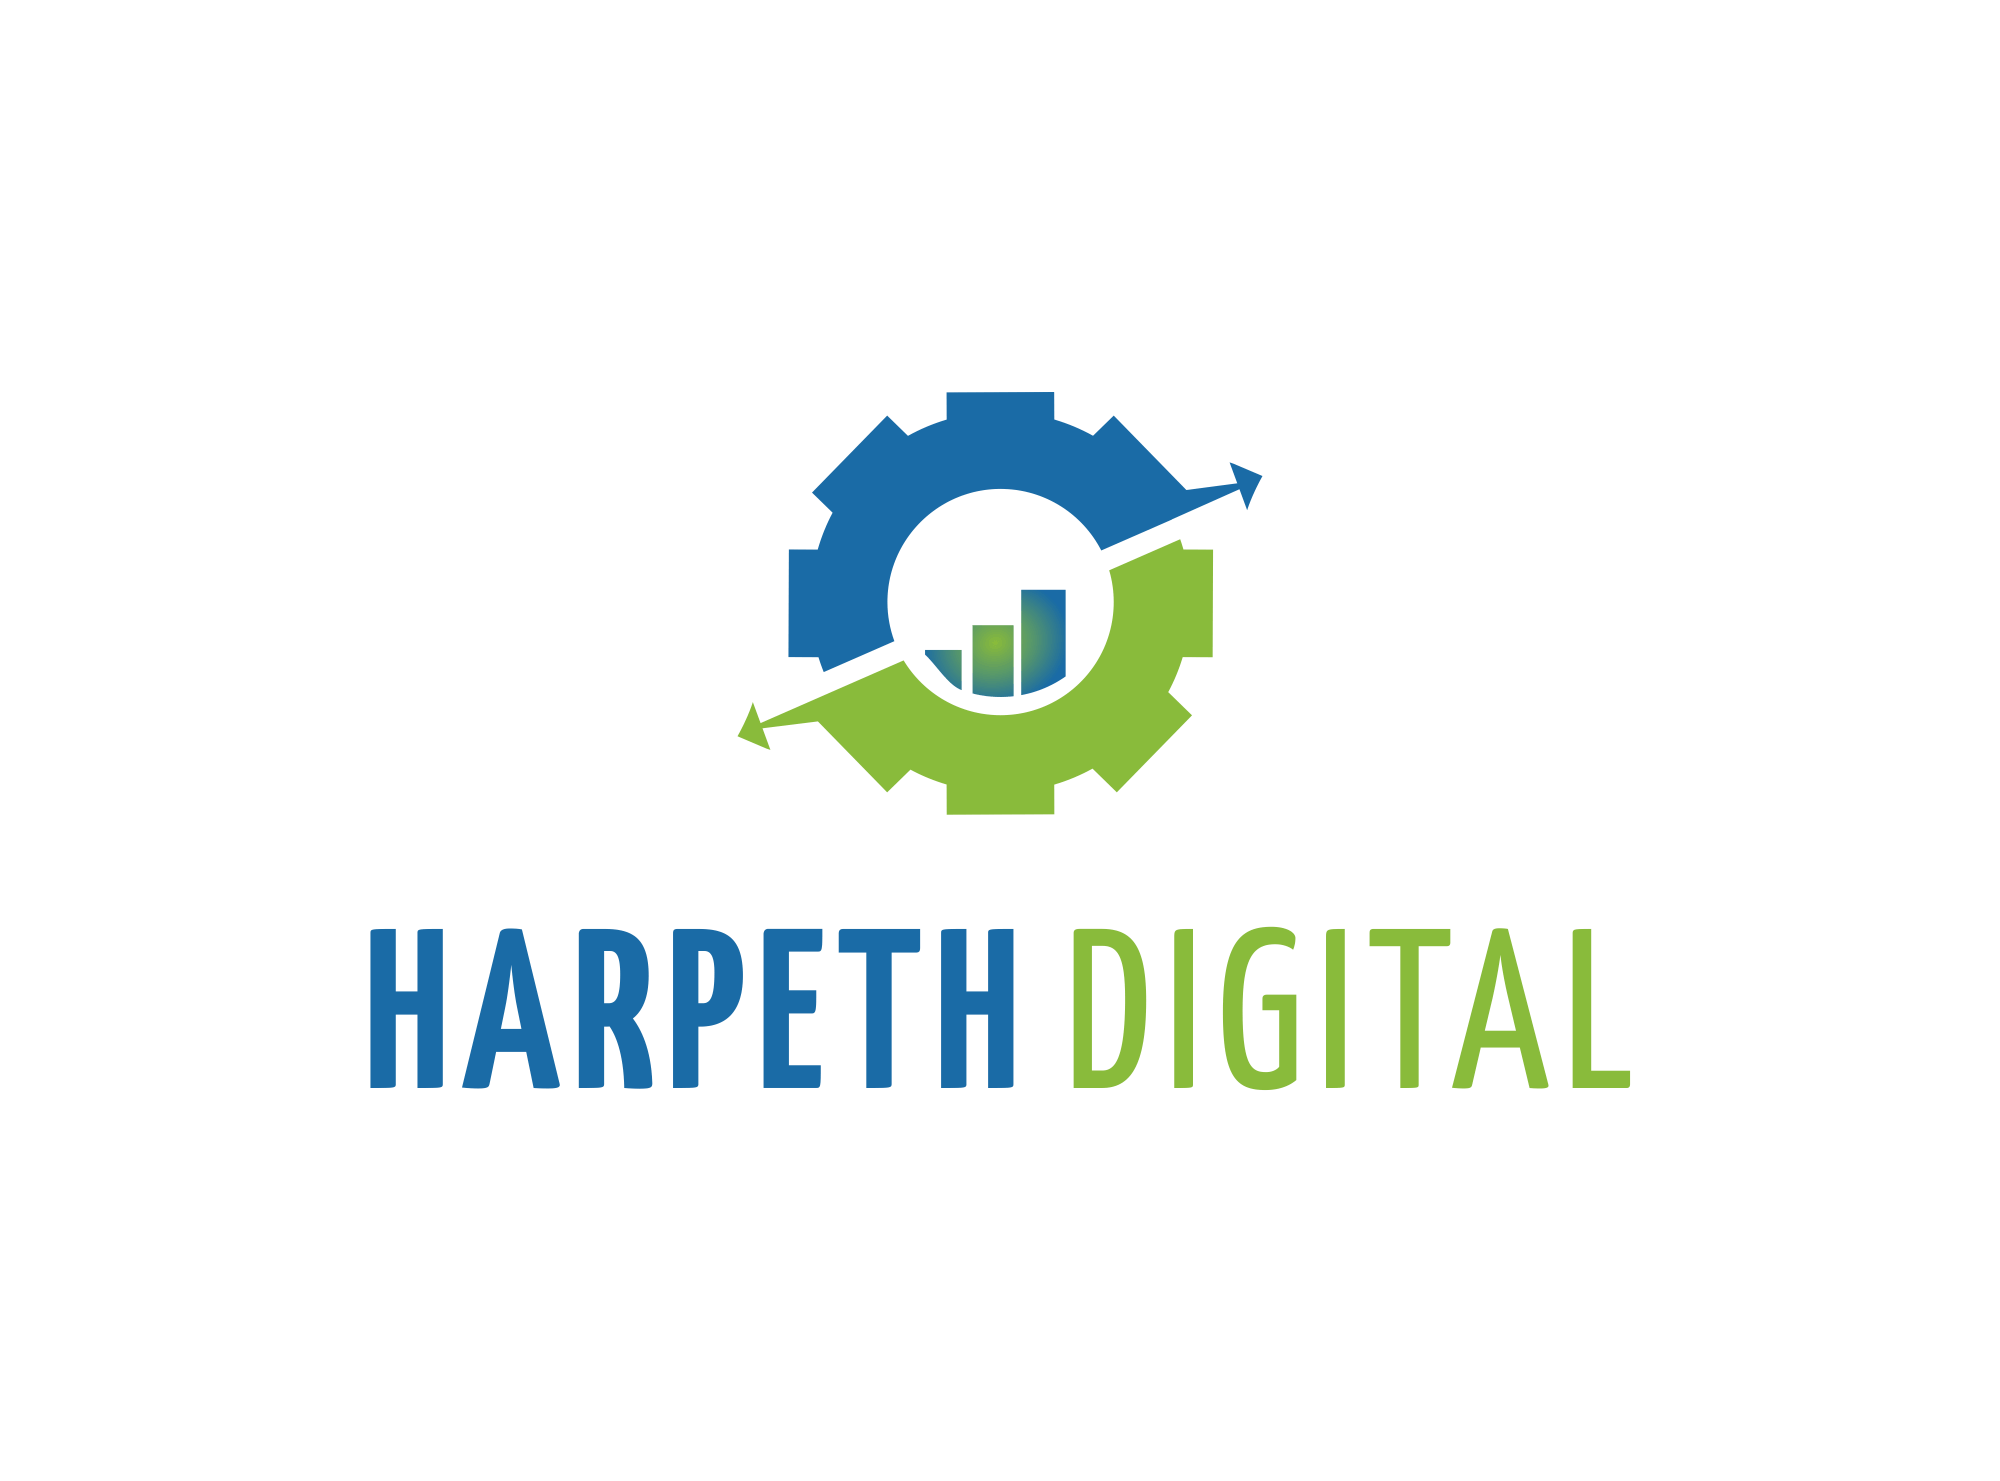 Harpeth Digital